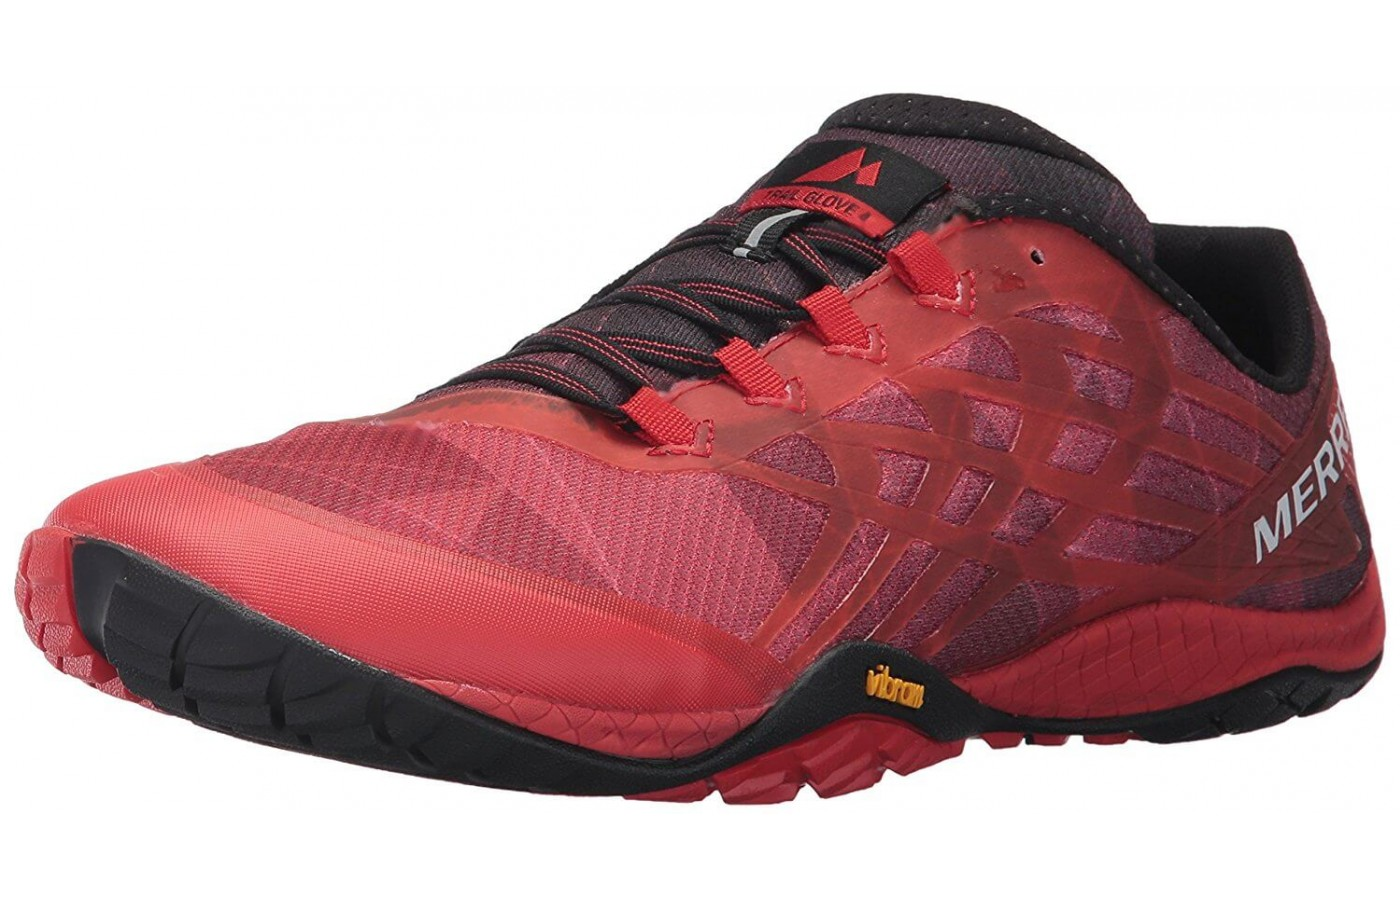 Angled view of Merrell Trail Glove 4